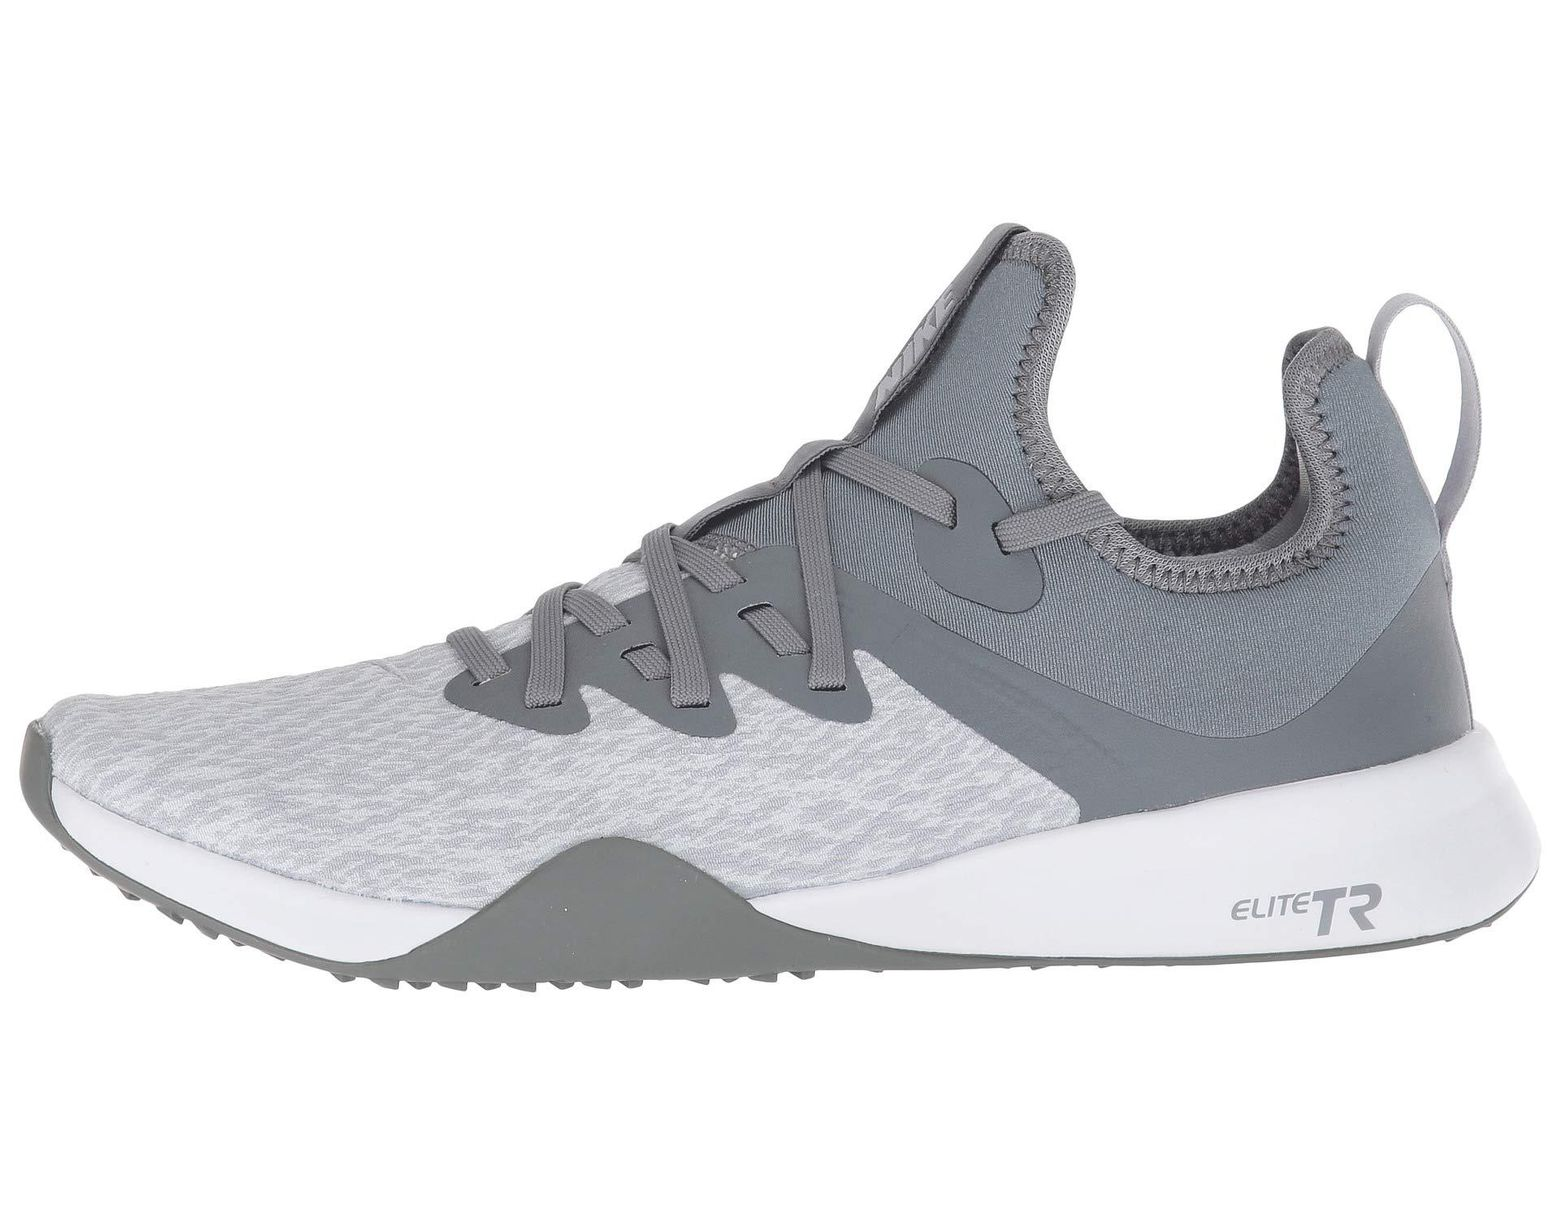 newest 550f6 20385 Nike Foundation Elite Tr (black white anthracite) Women s Cross Training  Shoes in Gray - Lyst